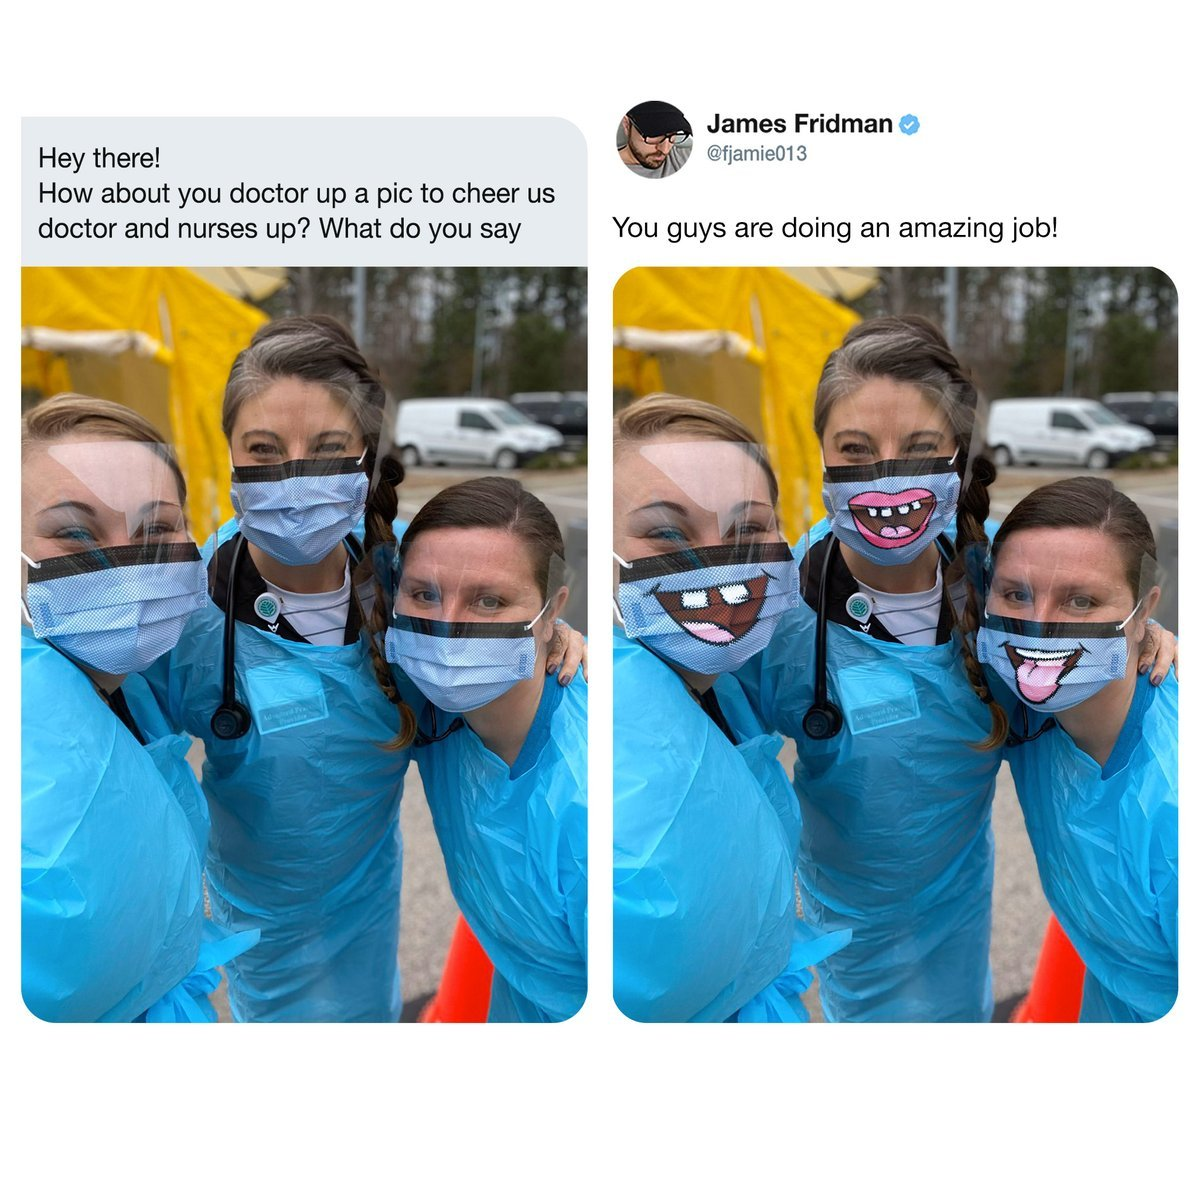 https://t.co/pZxXp9iVnU James Fridman O Hey there! How about you doctor up a pic to cheer us doctor and nurses up? What do you...